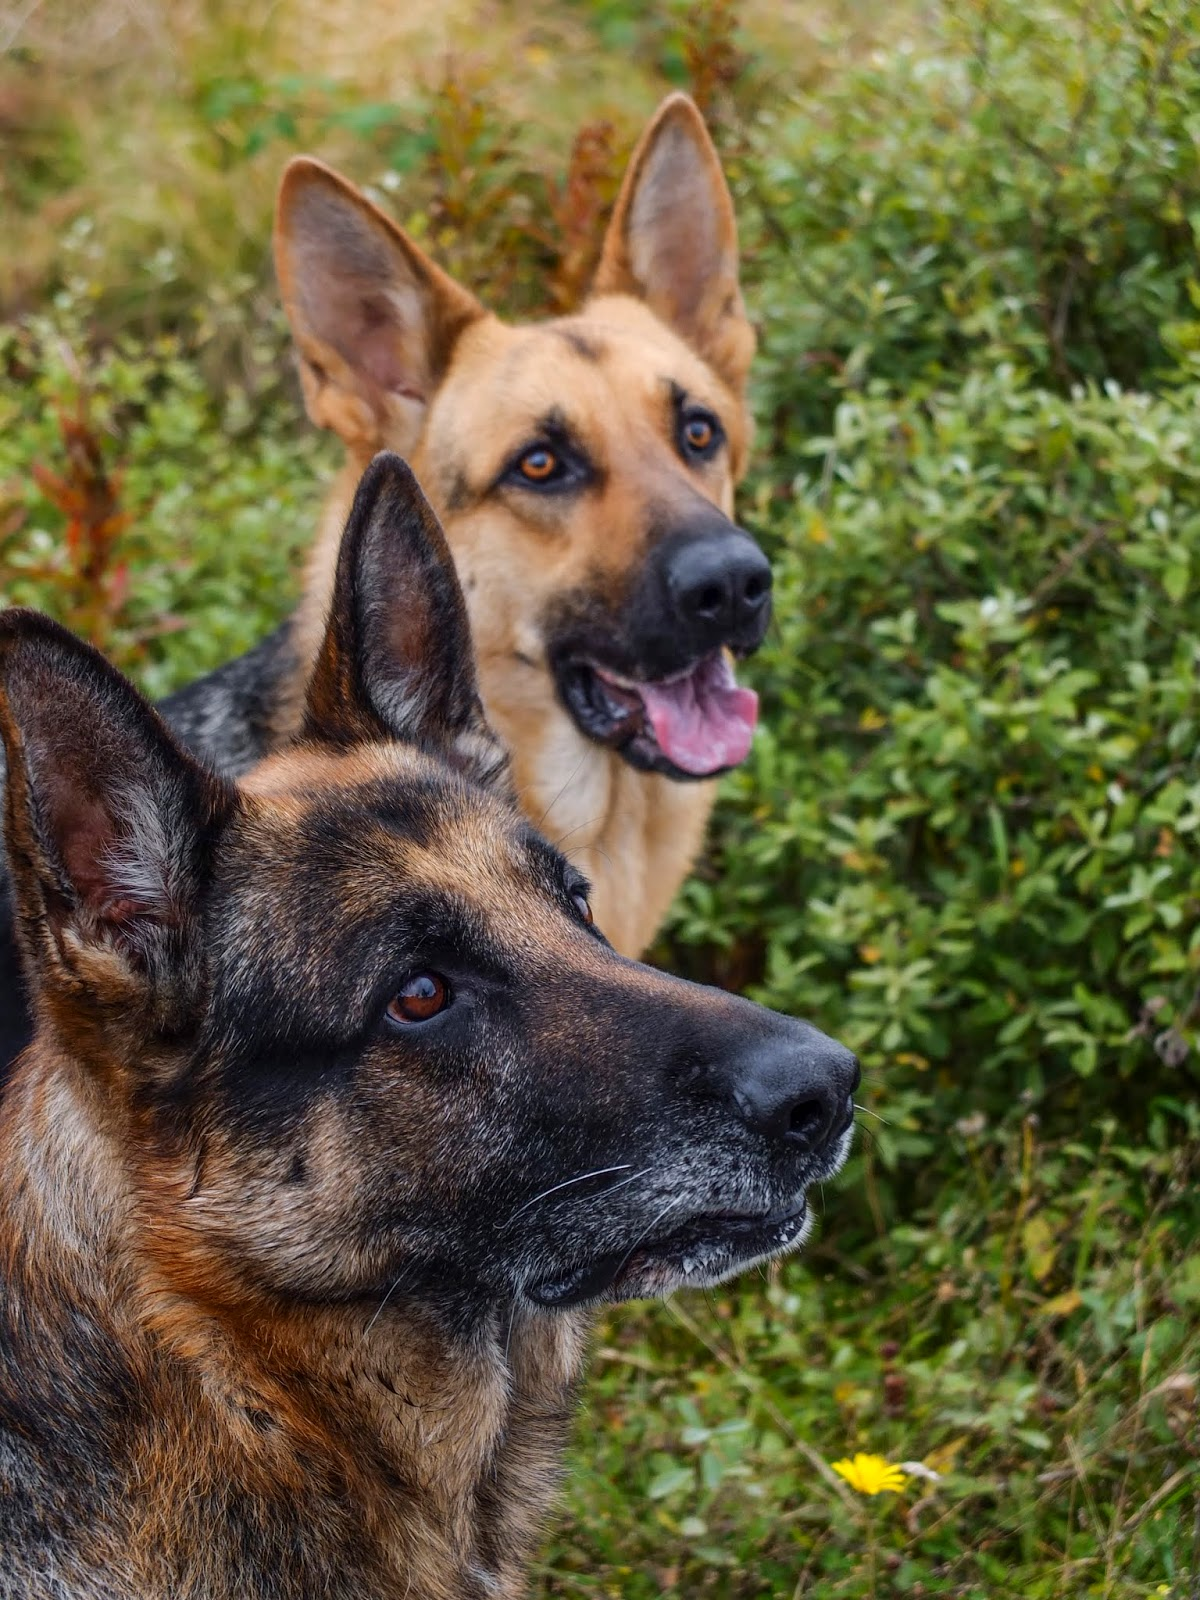 A portrait of two German Shepherds Steve and Nala looking up at something off camera.